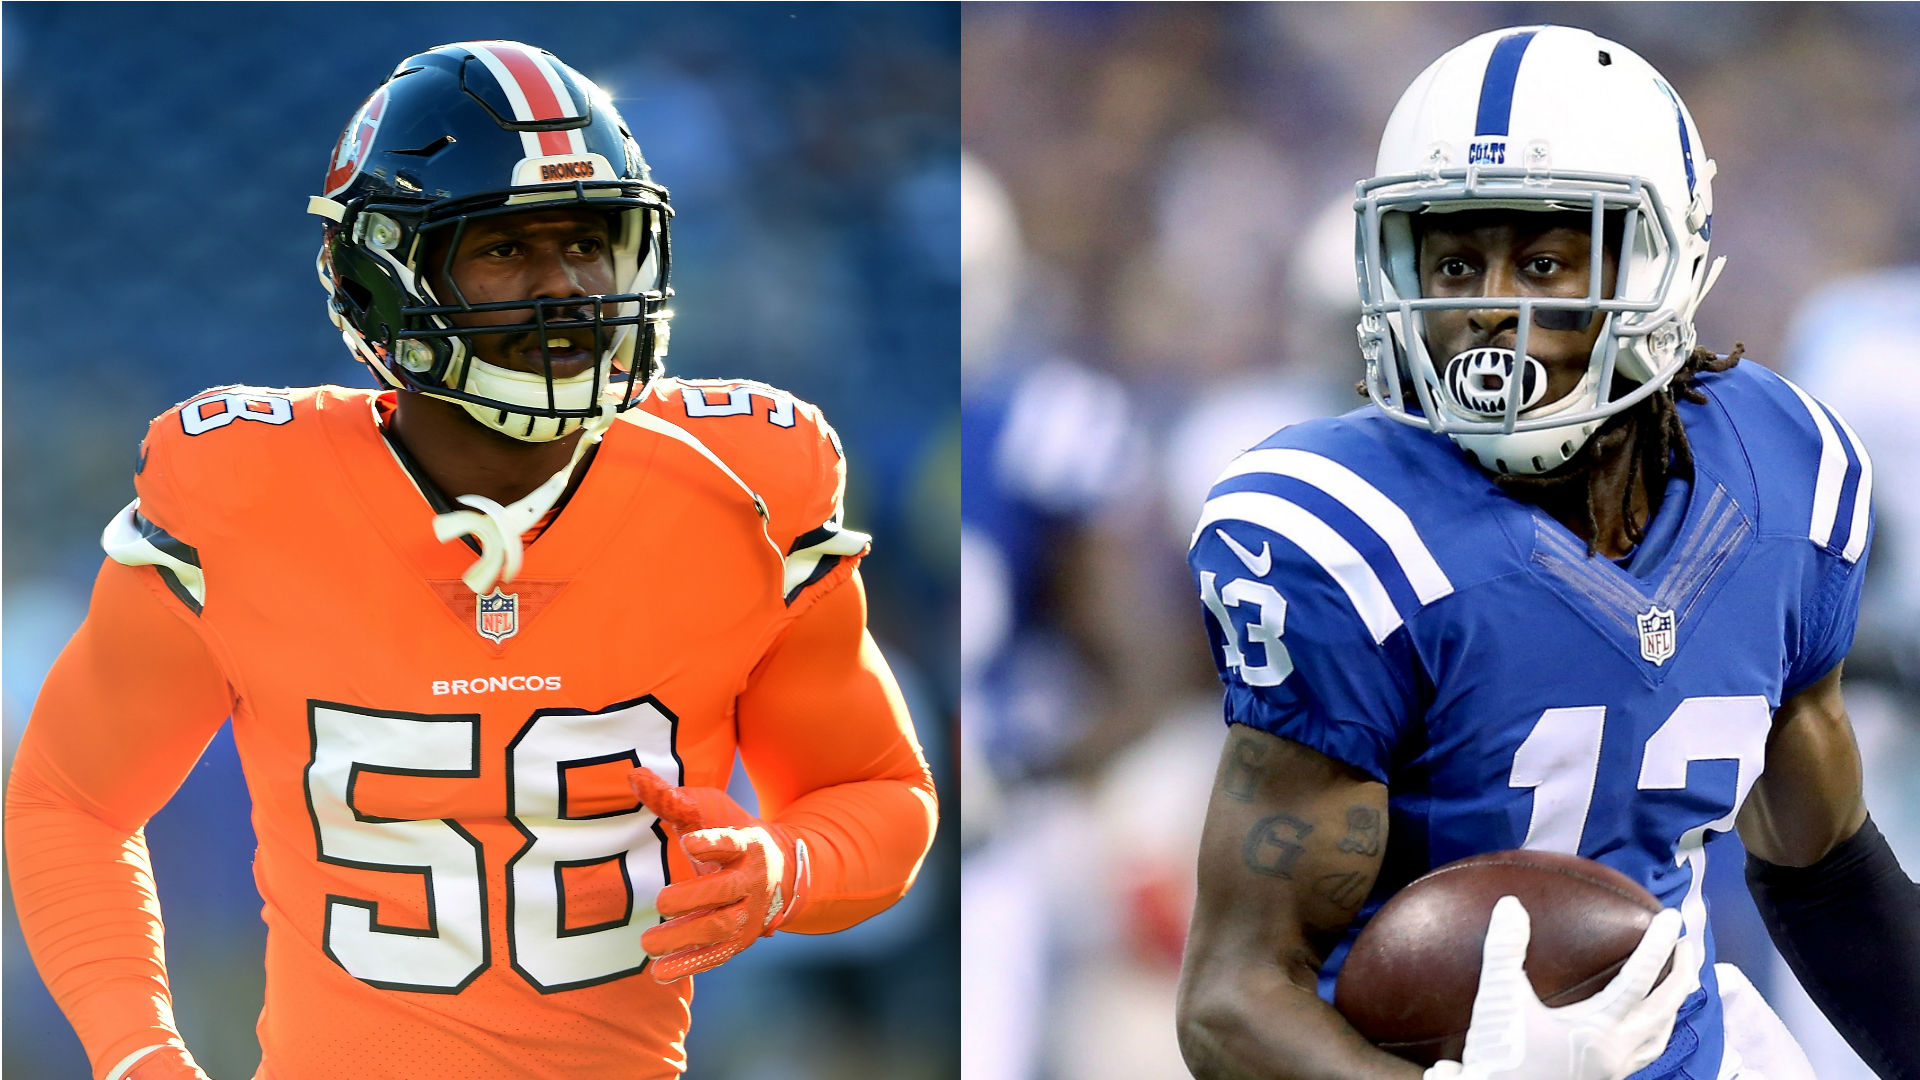 Broncos vs. Colts: How to watch, live stream 'Thursday Night Football'